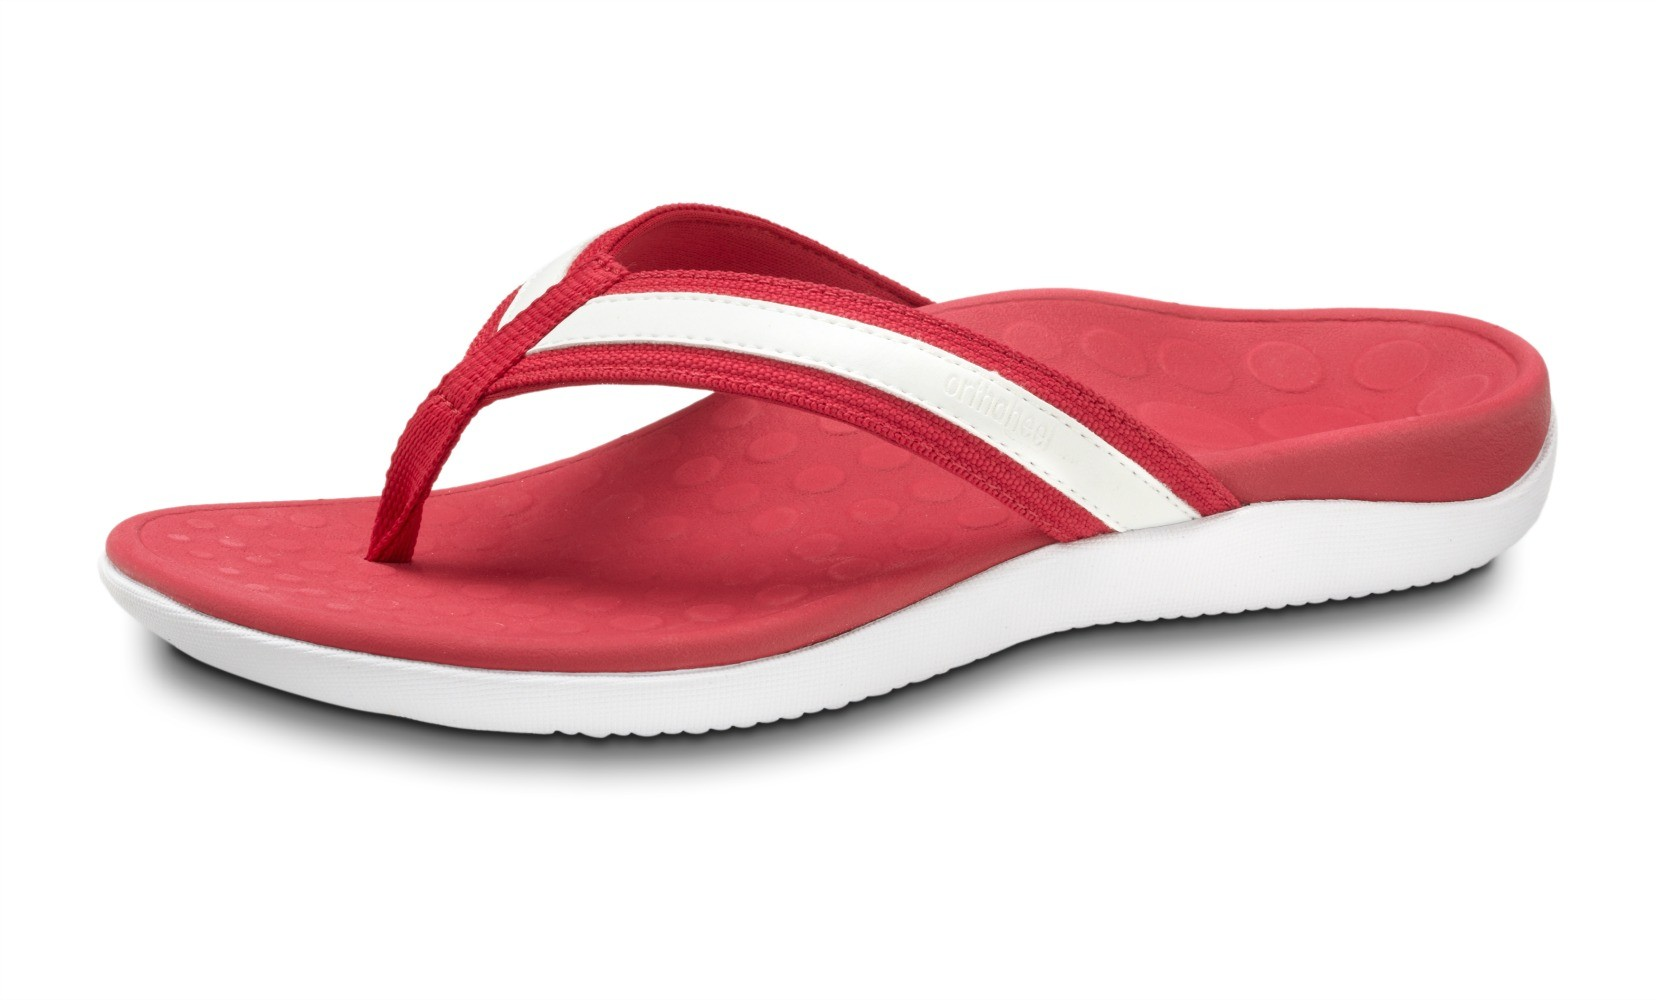 Orthaheel Tide Flip Flop Berry And White Online Discount